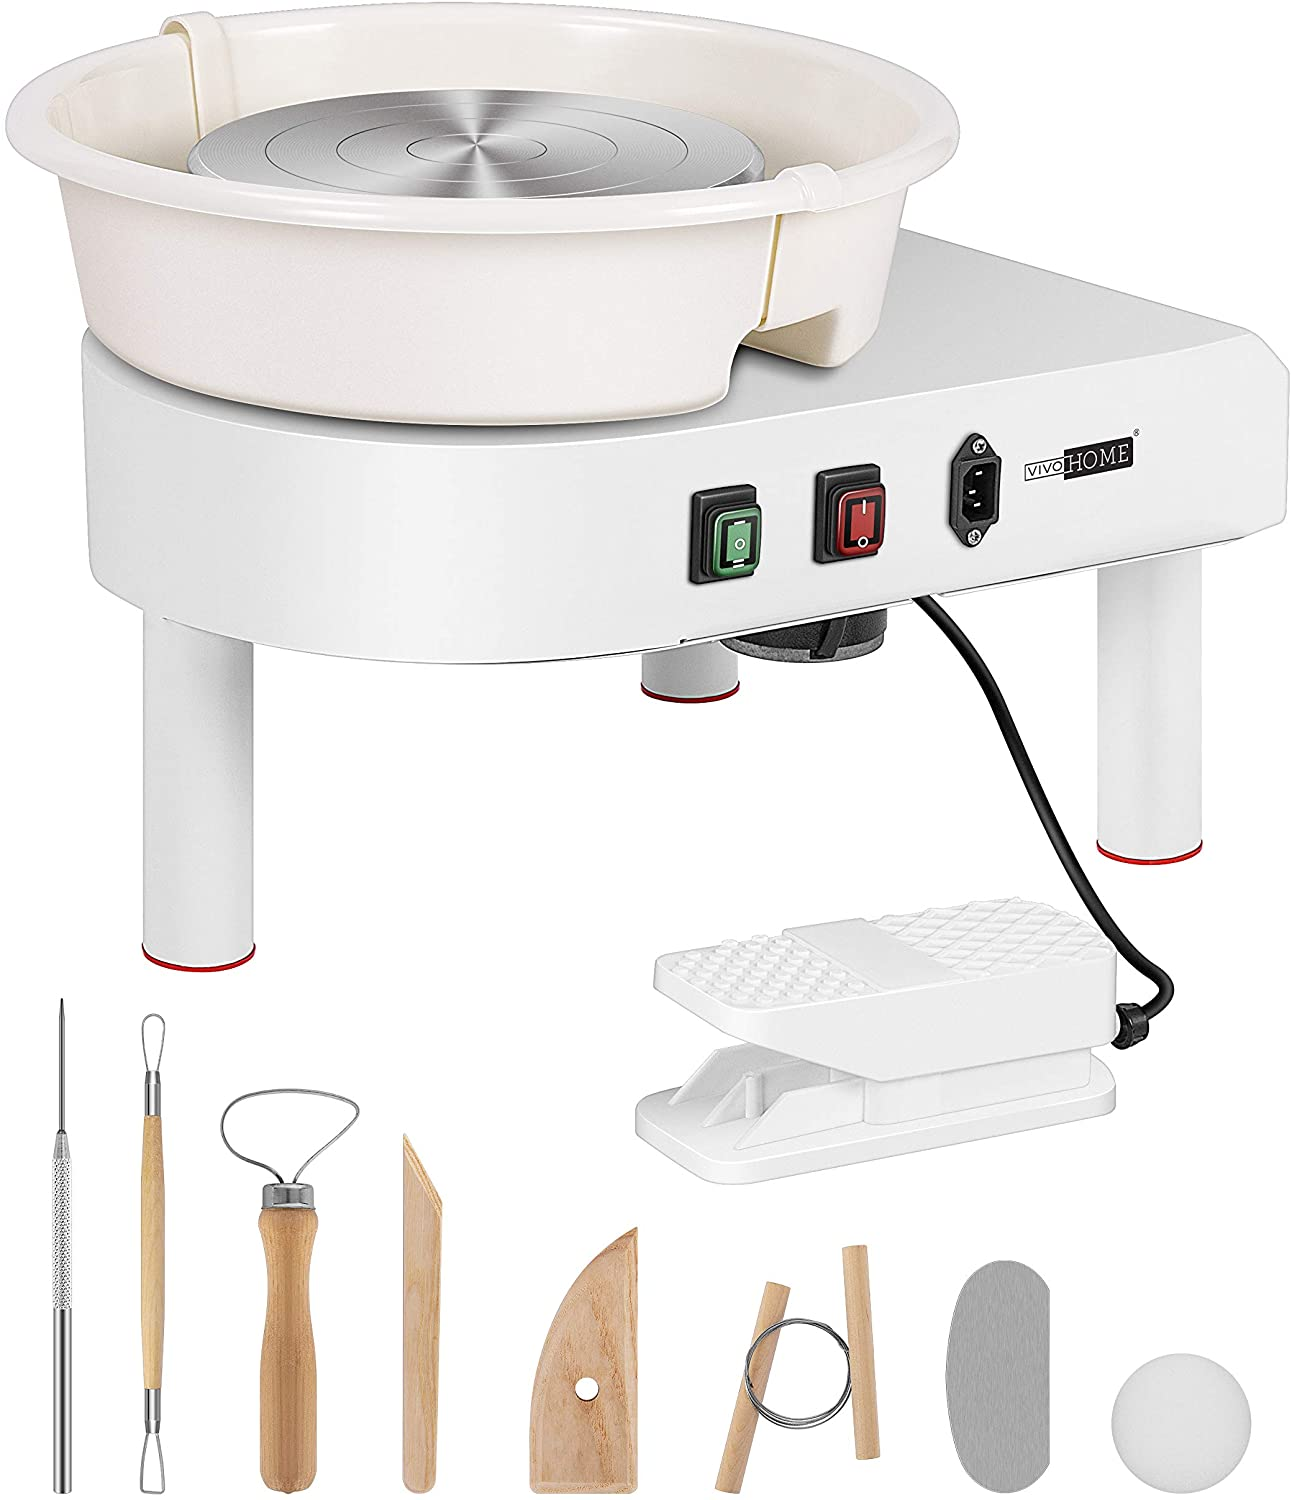 25CM LCD Display Touch Screen Electric Pottery Wheel Machine Table Top Ceramic Forming Machine with Foot Pedal Removable Detachable ABS Basin DIY Clay Art Craft Shaping Tools Gray